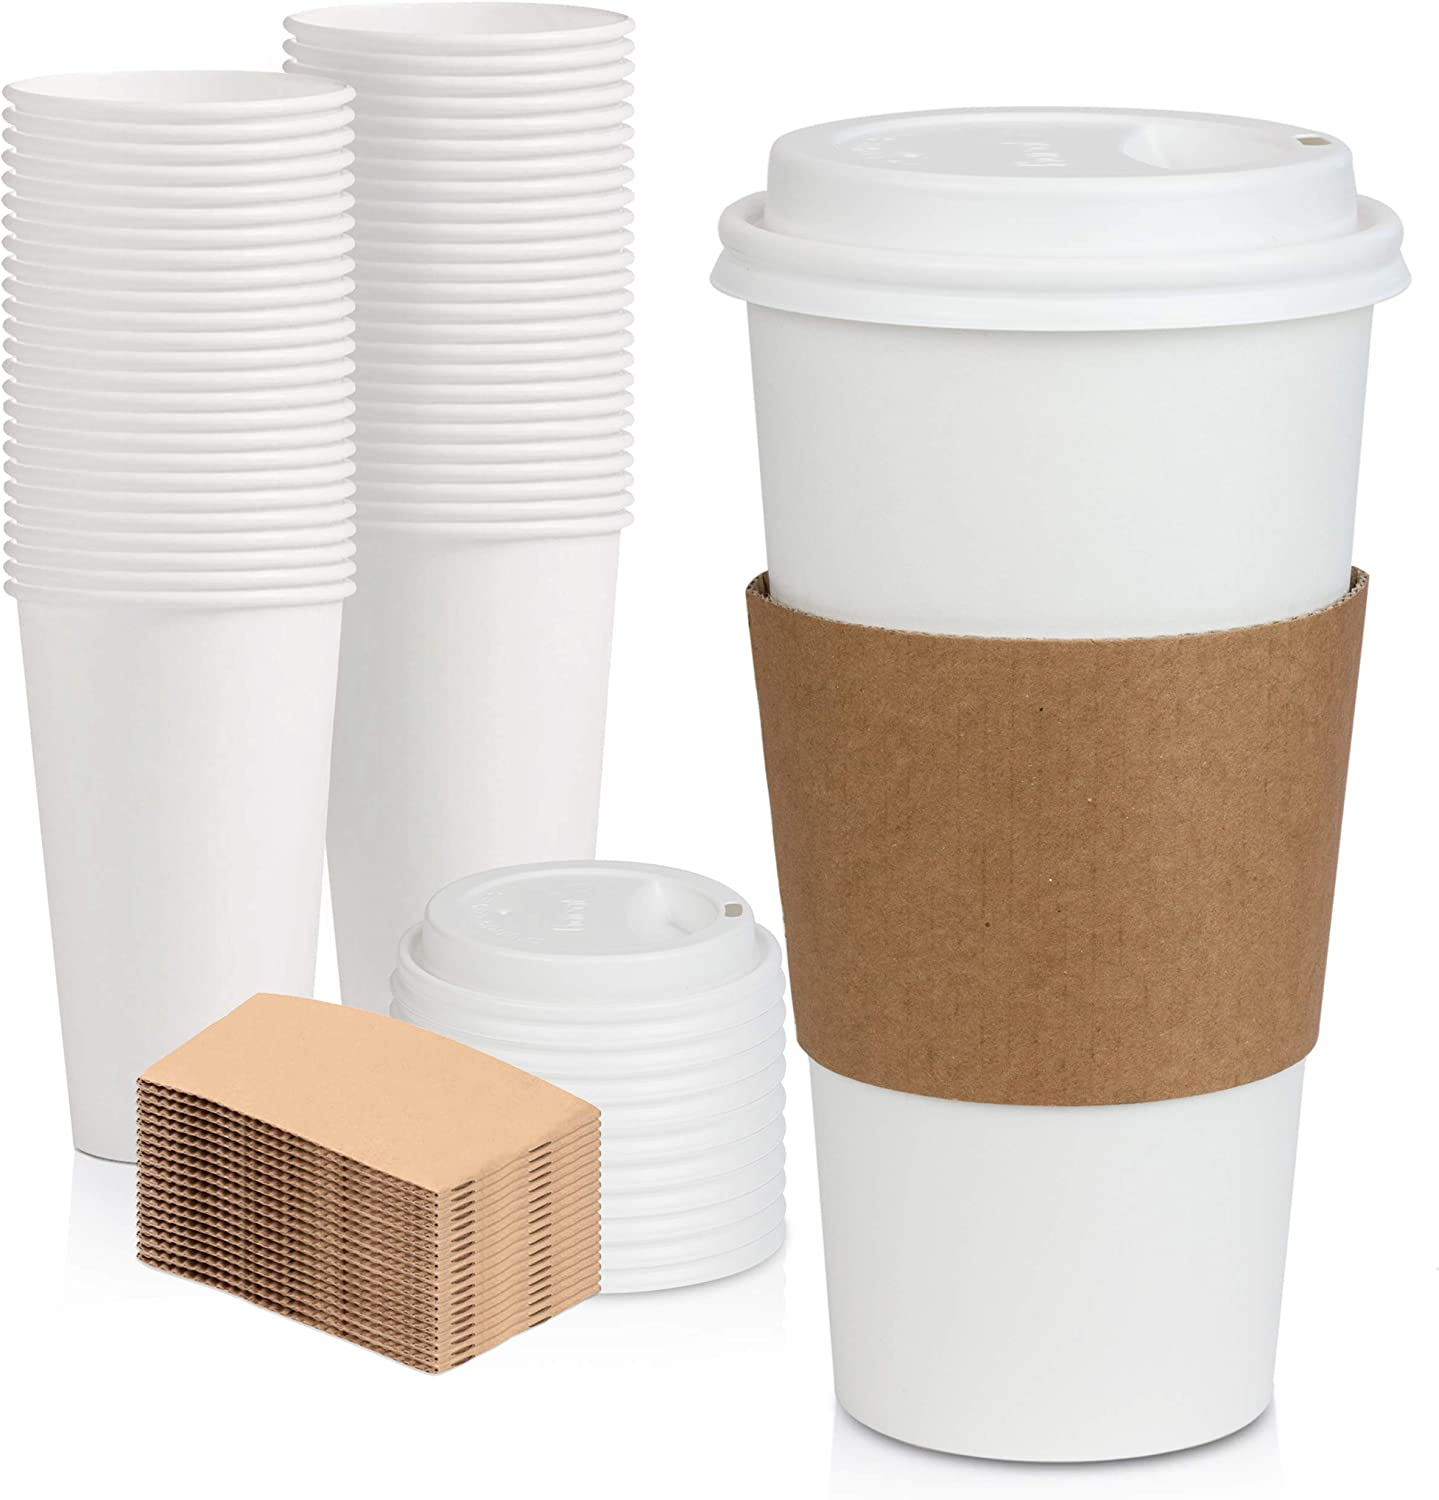 [50 Pack] White Coffee Cups with White Dome Lids and Brown Sleeves - 20oz Disposable Paper Coffee Cups - To Go Cups for Hot Chocolate, Tea, and Other Drinks - Ideal for Cafes, Bistros, and Businesses